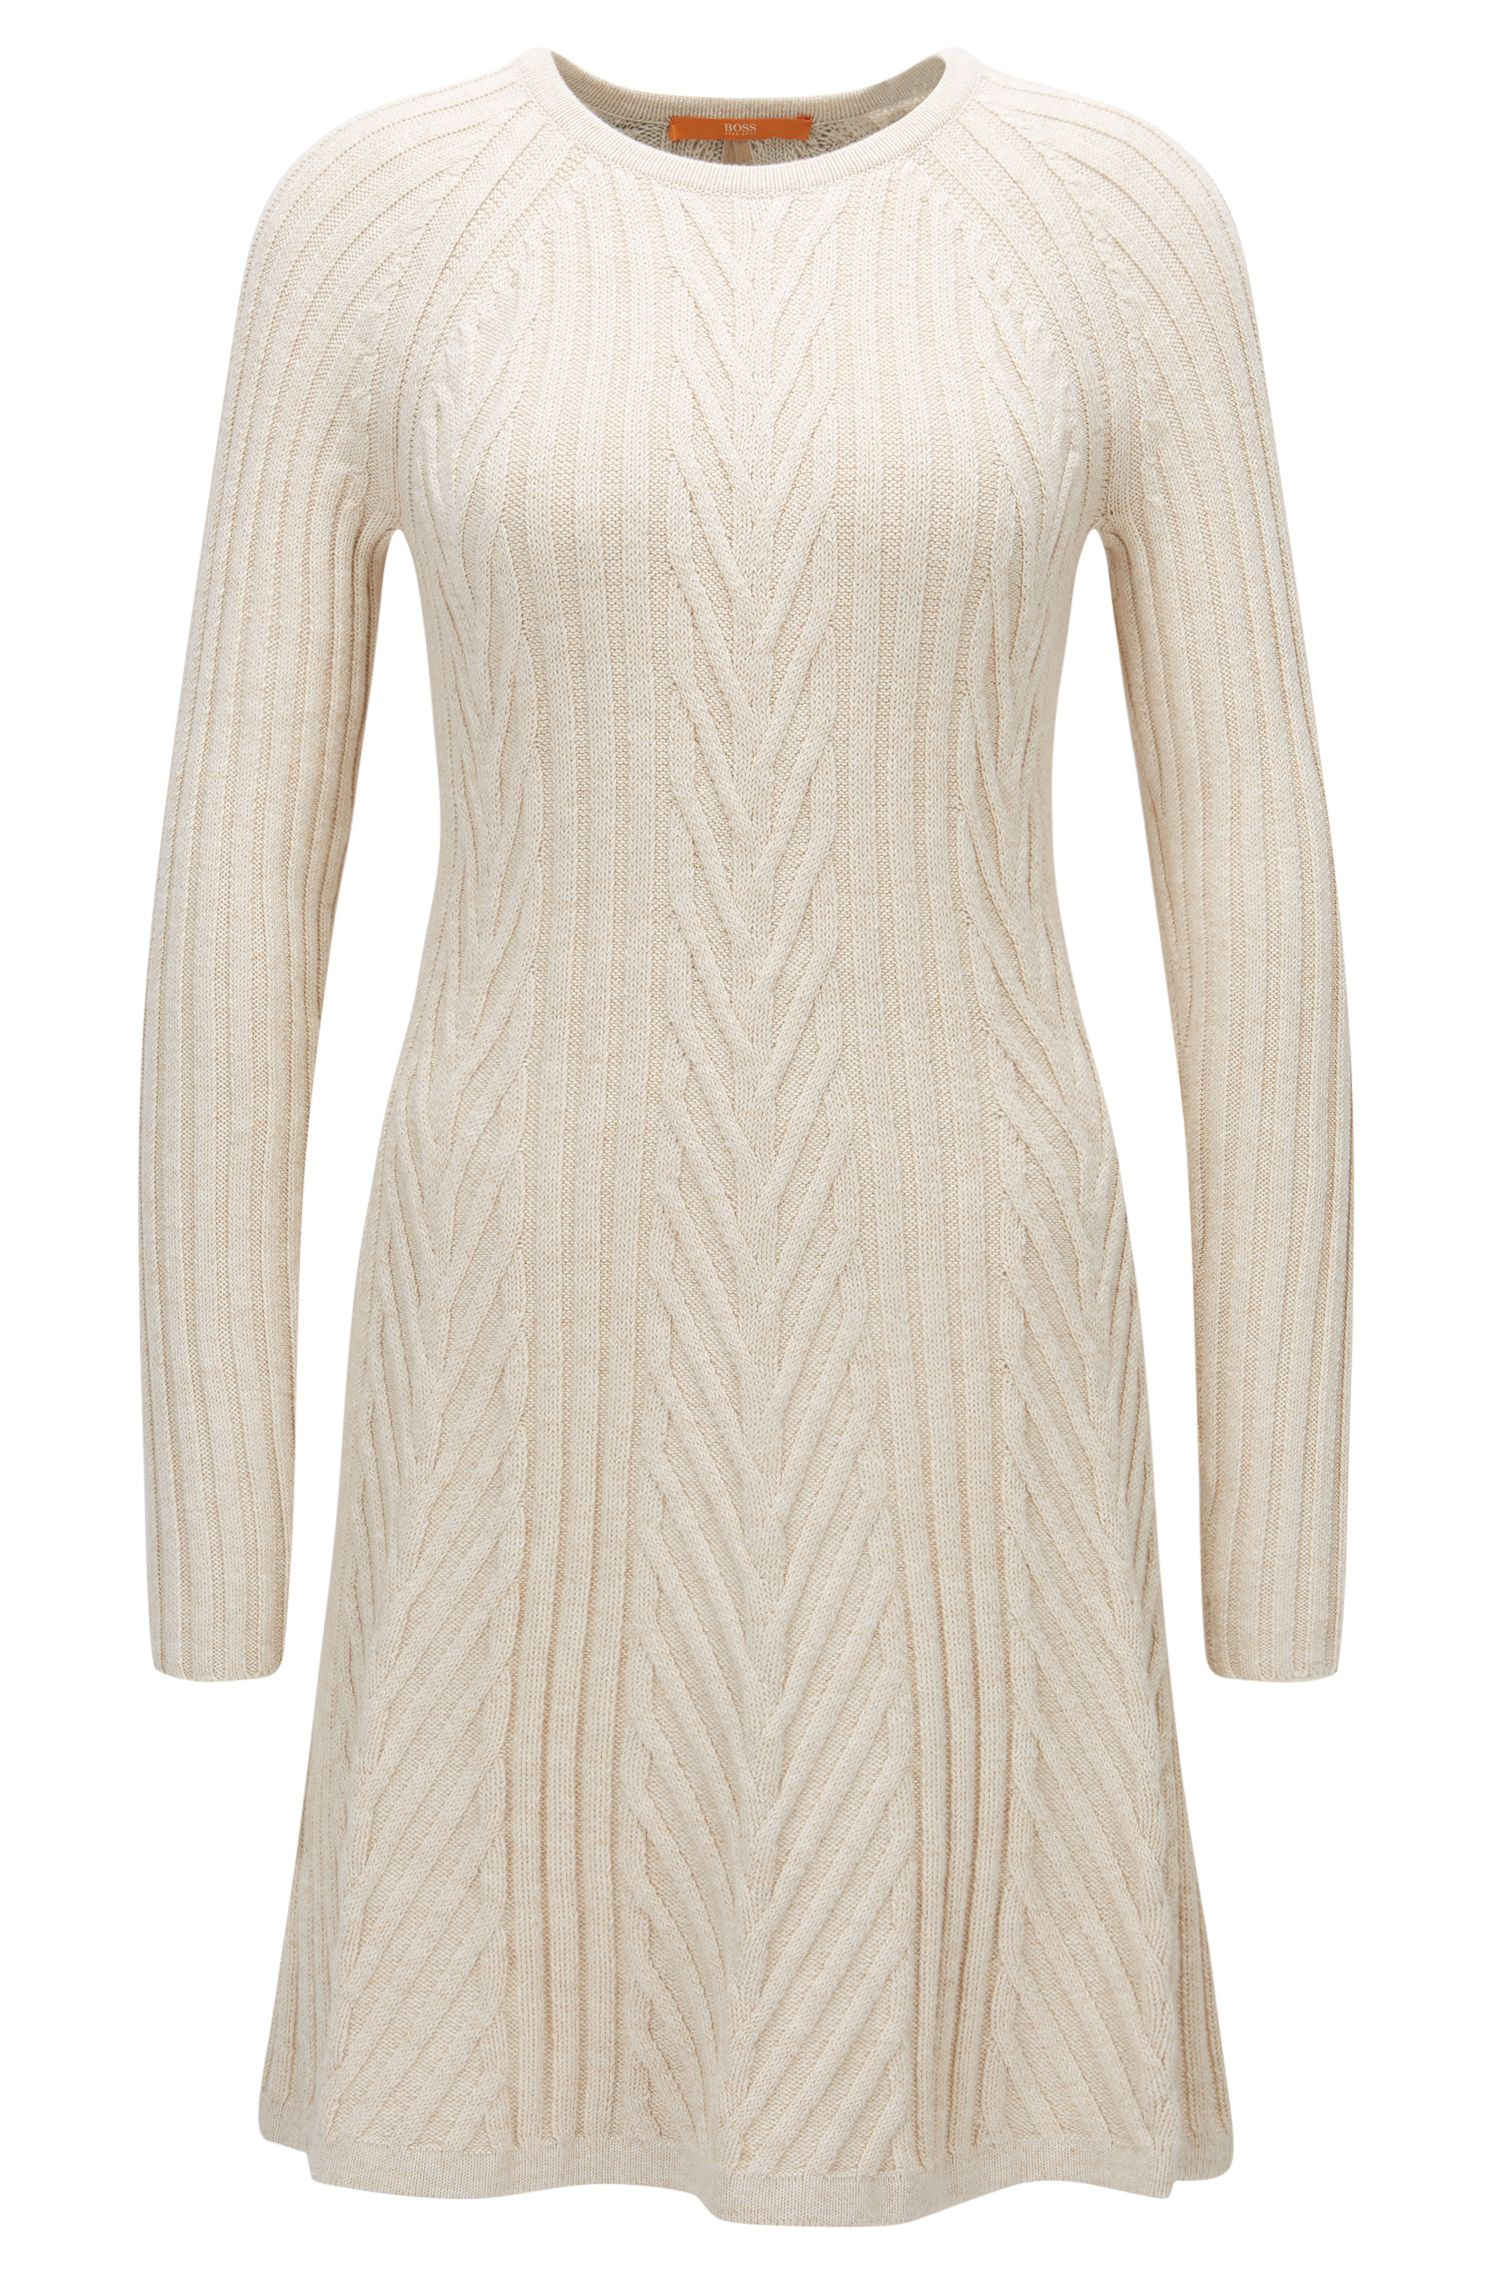 Long-sleeved dress in a cotton mix